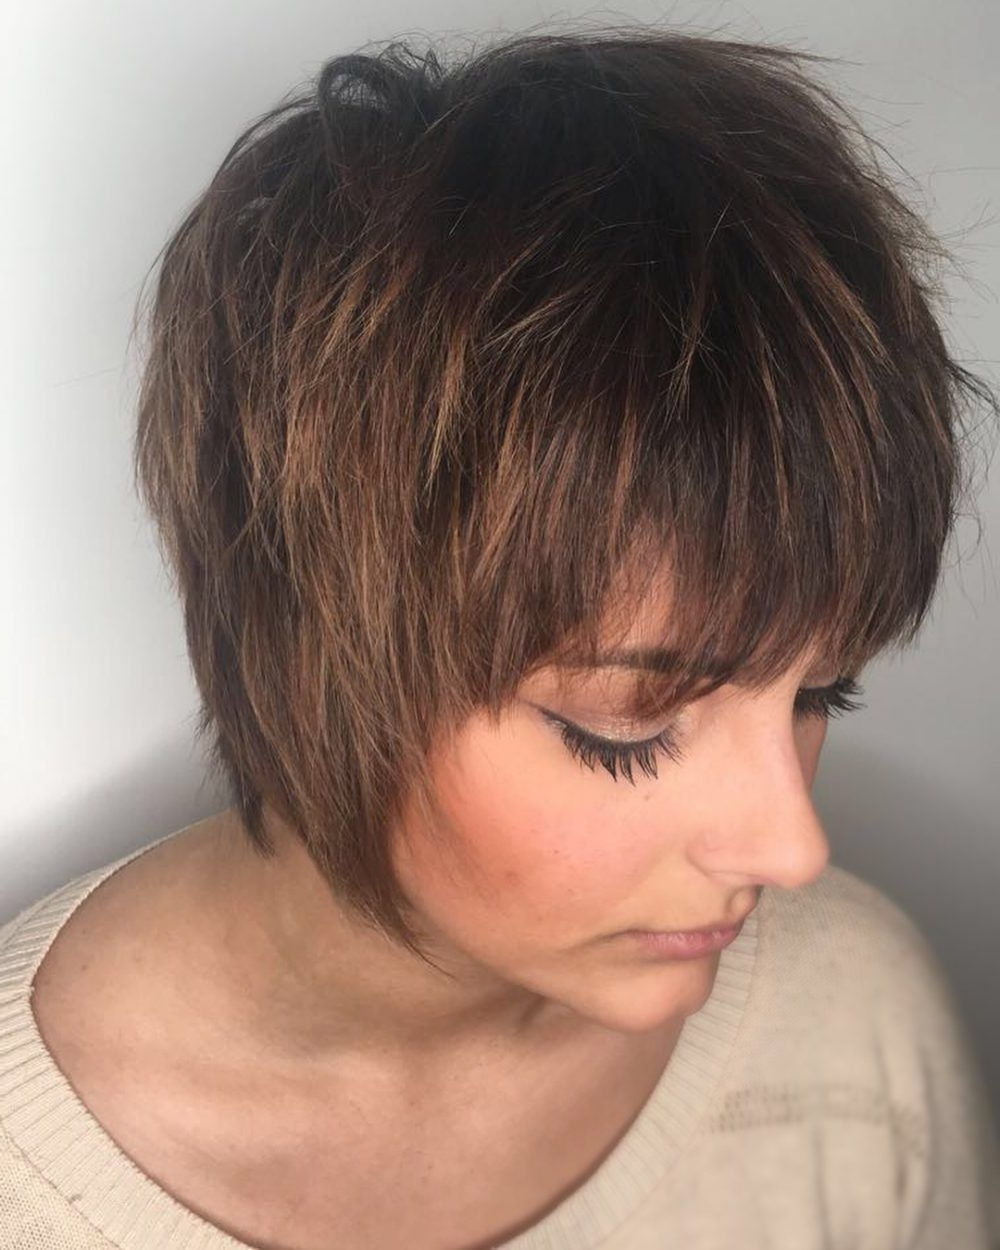 Short Shag Hairstyles With 2018 Short Shaggy Pixie Hairstyles (View 13 of 20)